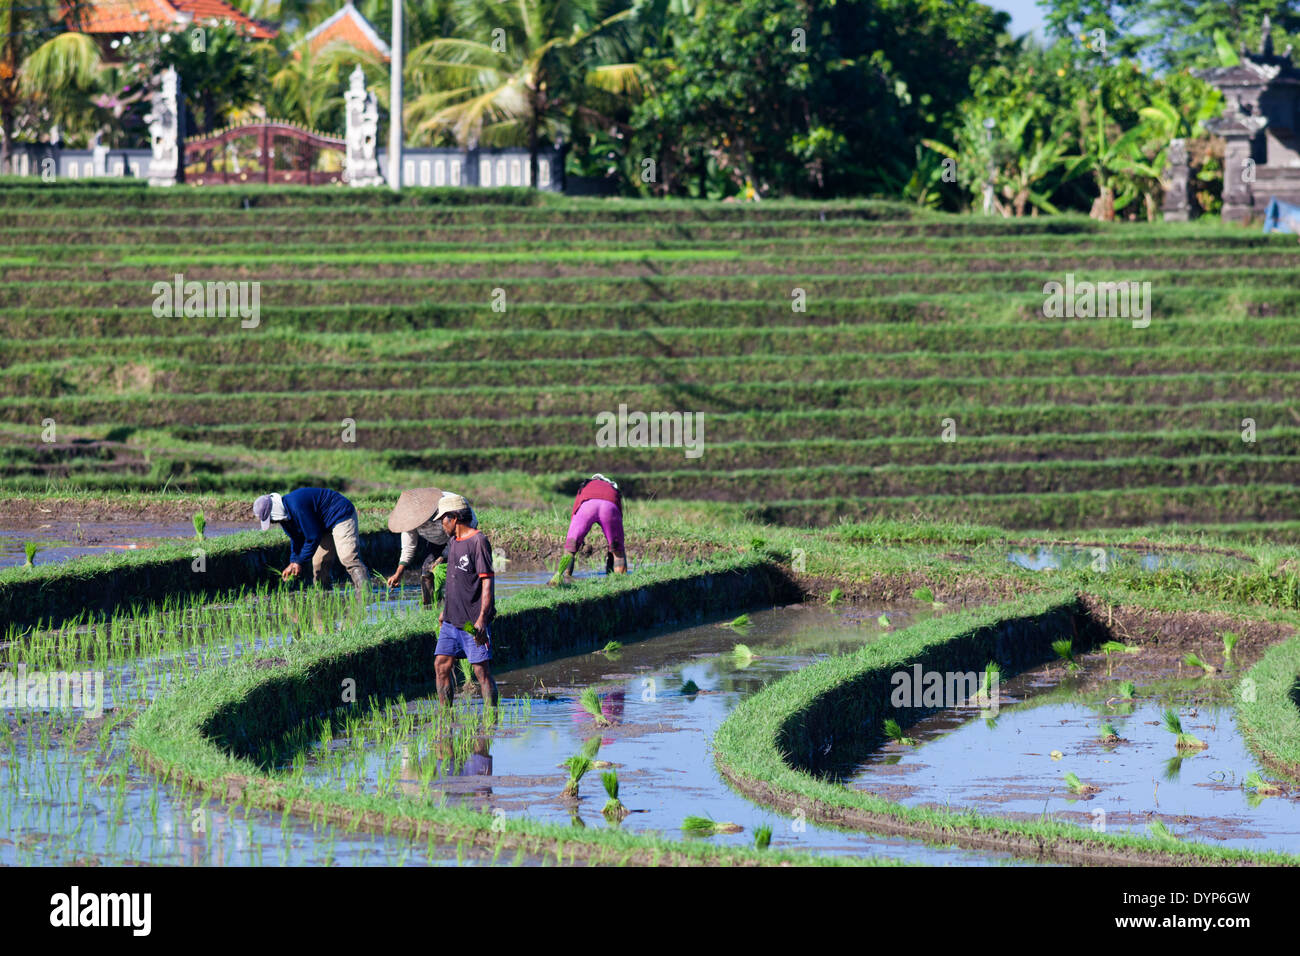 People working on rice fields in region of Antosari and Belimbing (probably closer to Antosari), Bali, Indonesia - Stock Image